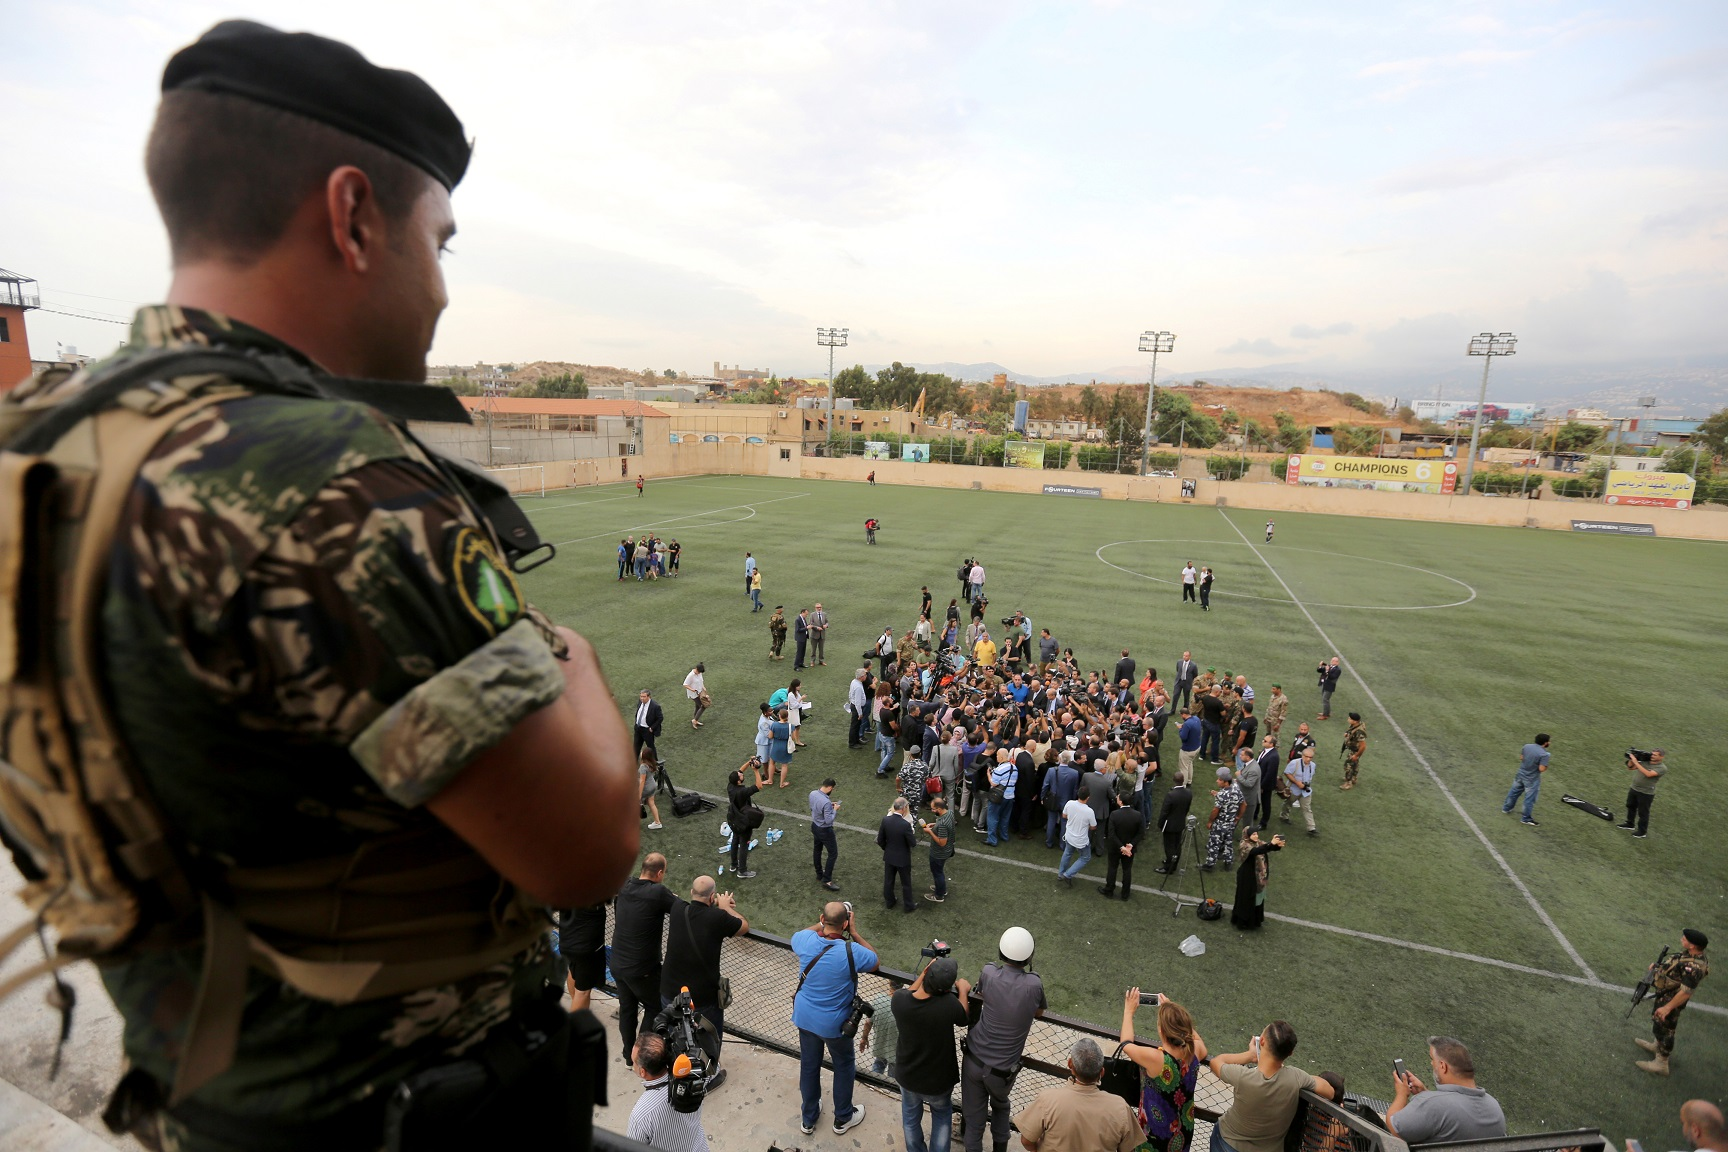 A lebanese army soldier stands guard during a tour for diplomats and journalists near the airport in Beirut